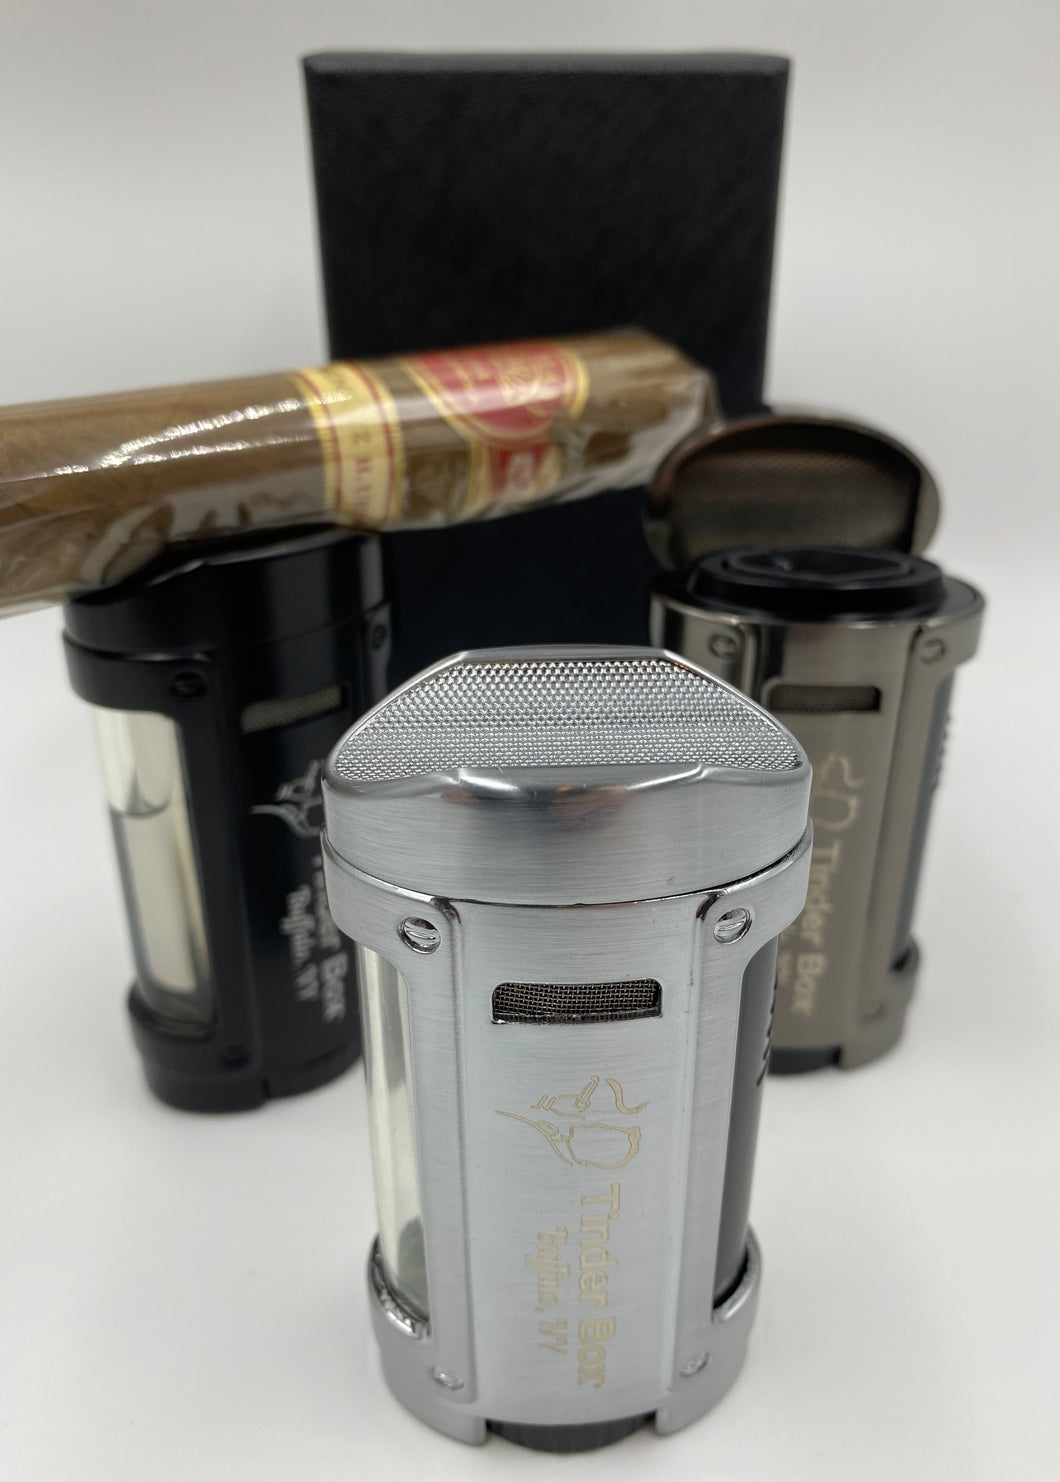 Tinder Box Buffalo 4-Flame Torch Lighter With Cigar Rest